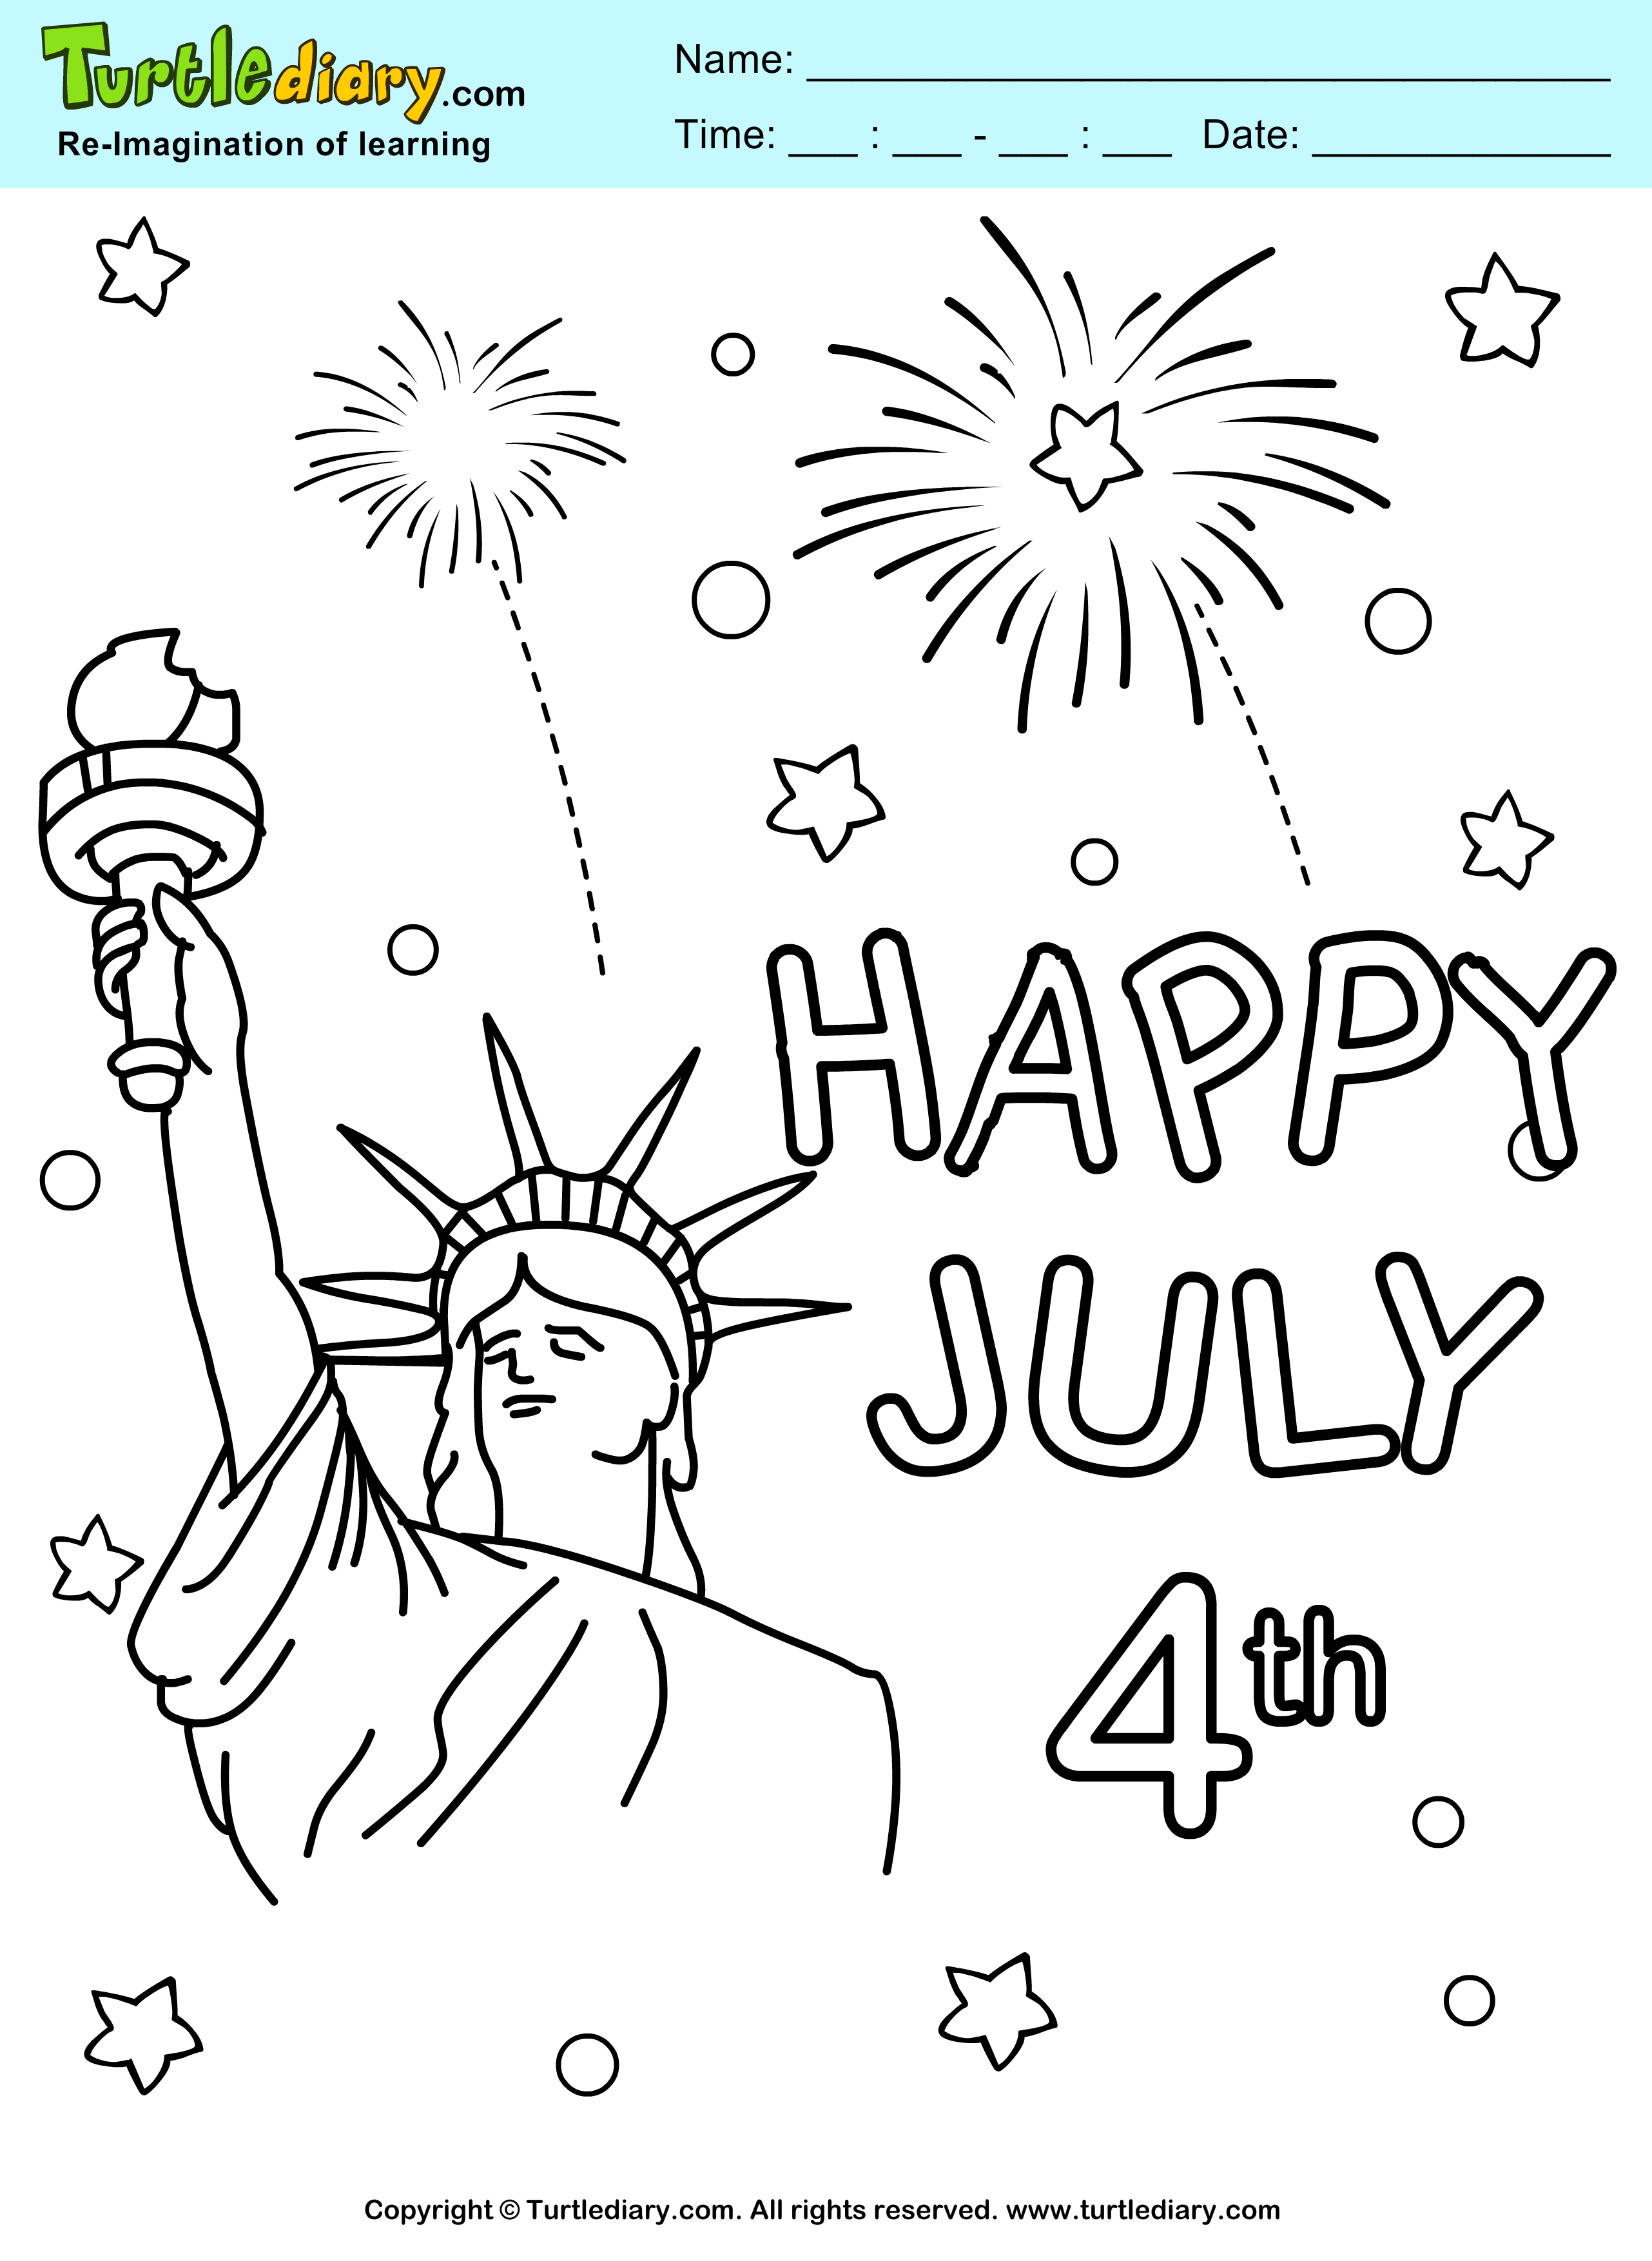 Fireworks 4th of july printable coloring sheet turtle diary for 4th of july fireworks coloring pages